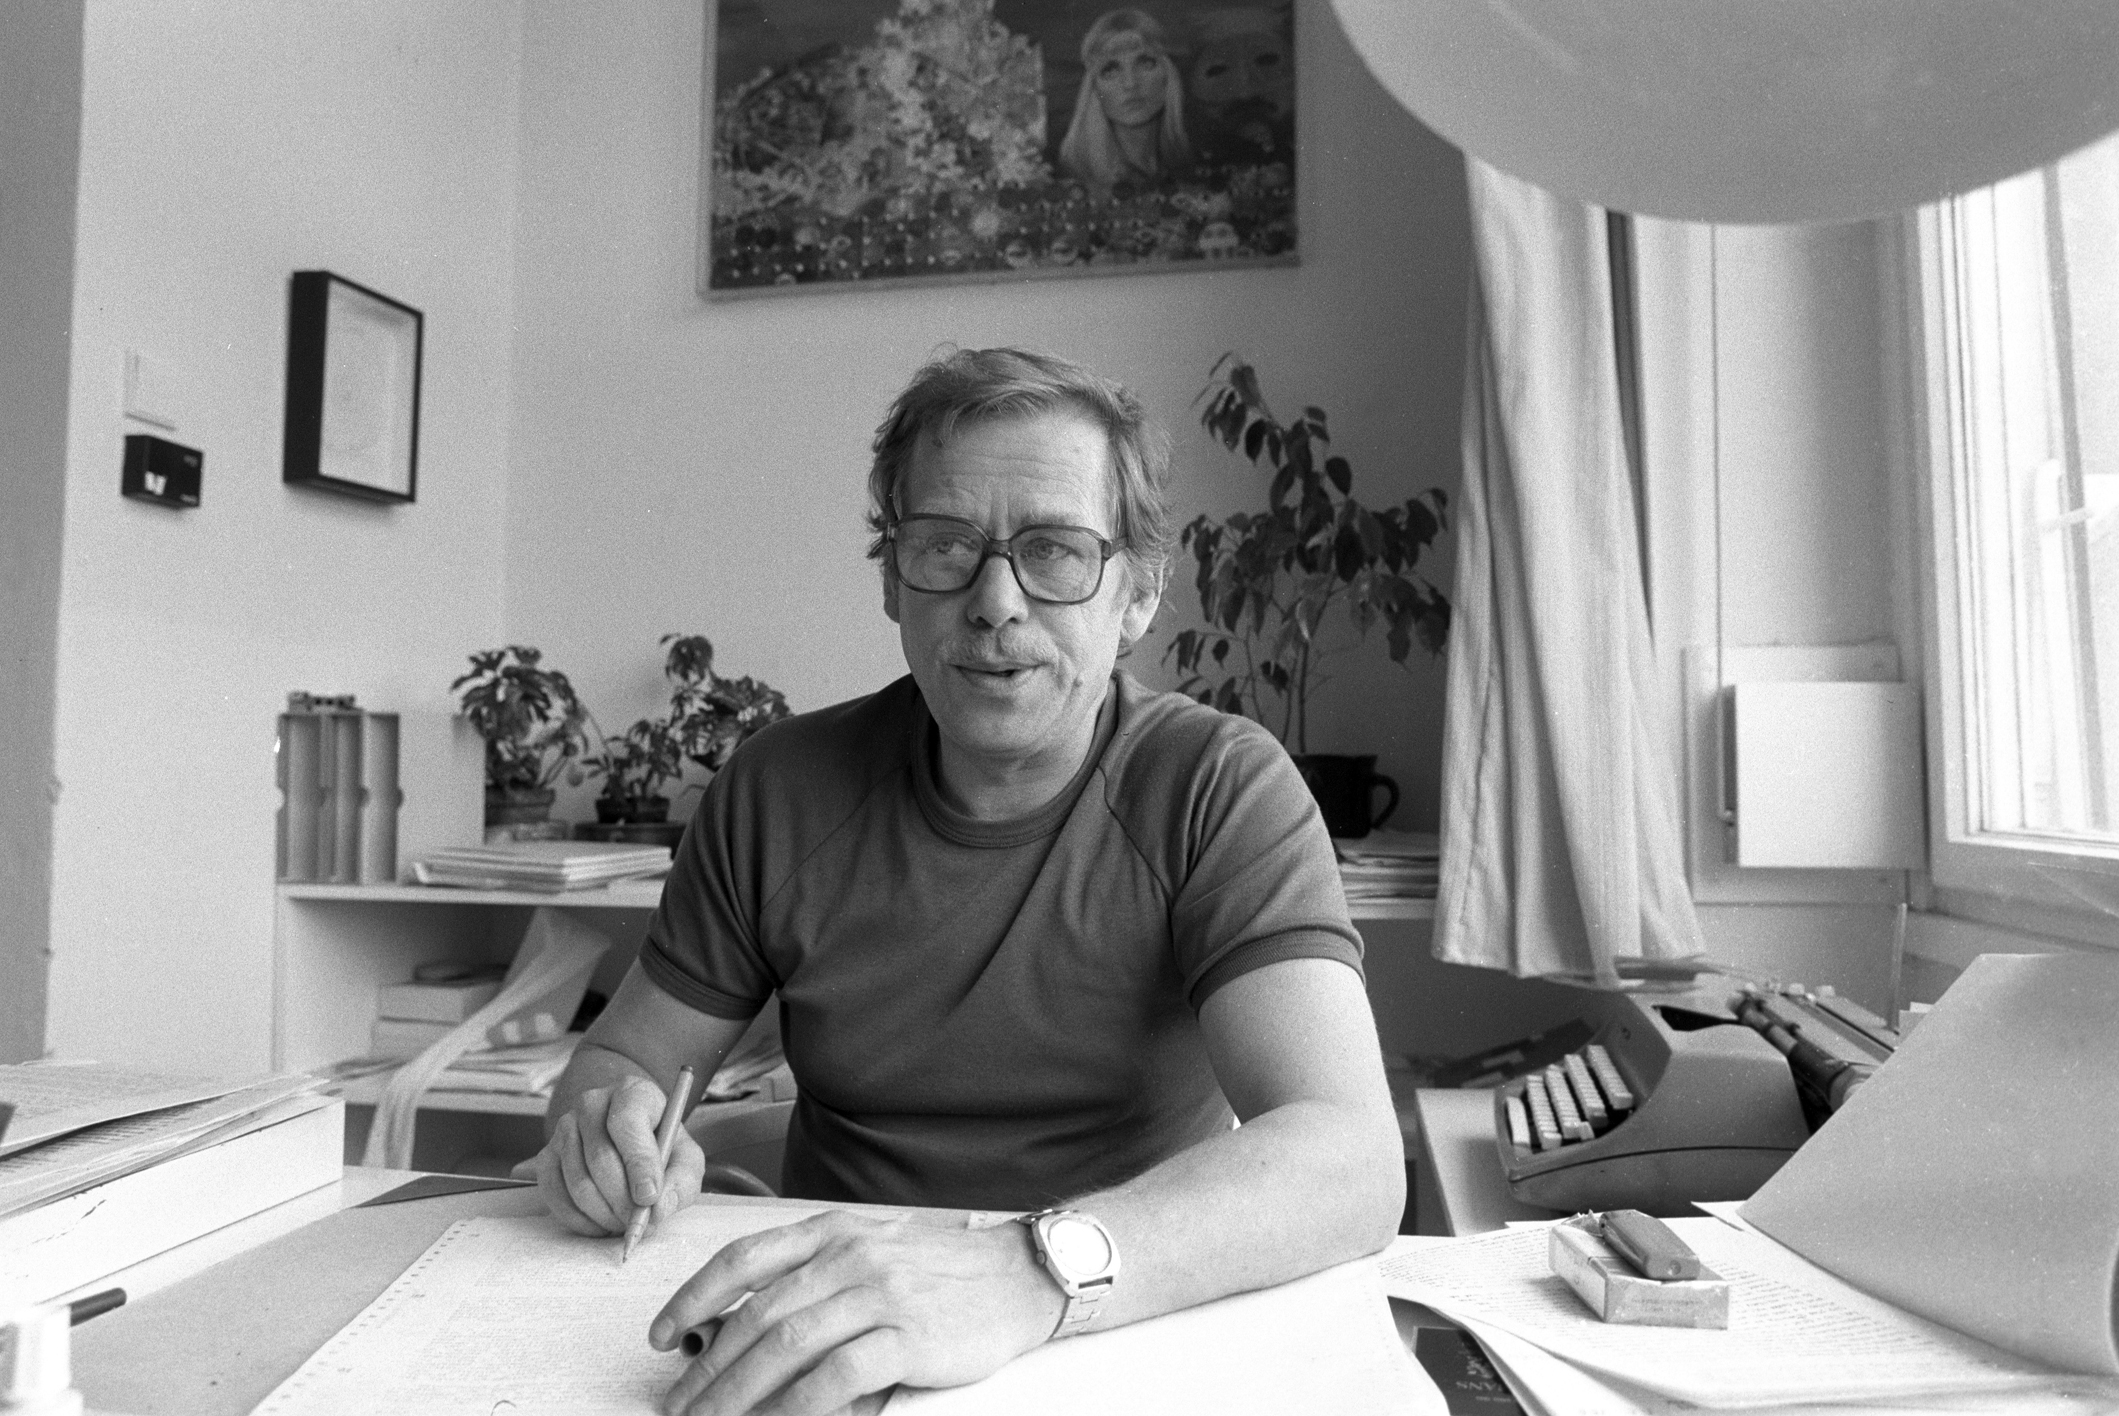 How the Communists wished Havel Happy Birthday and elected him President of Czechoslovakia